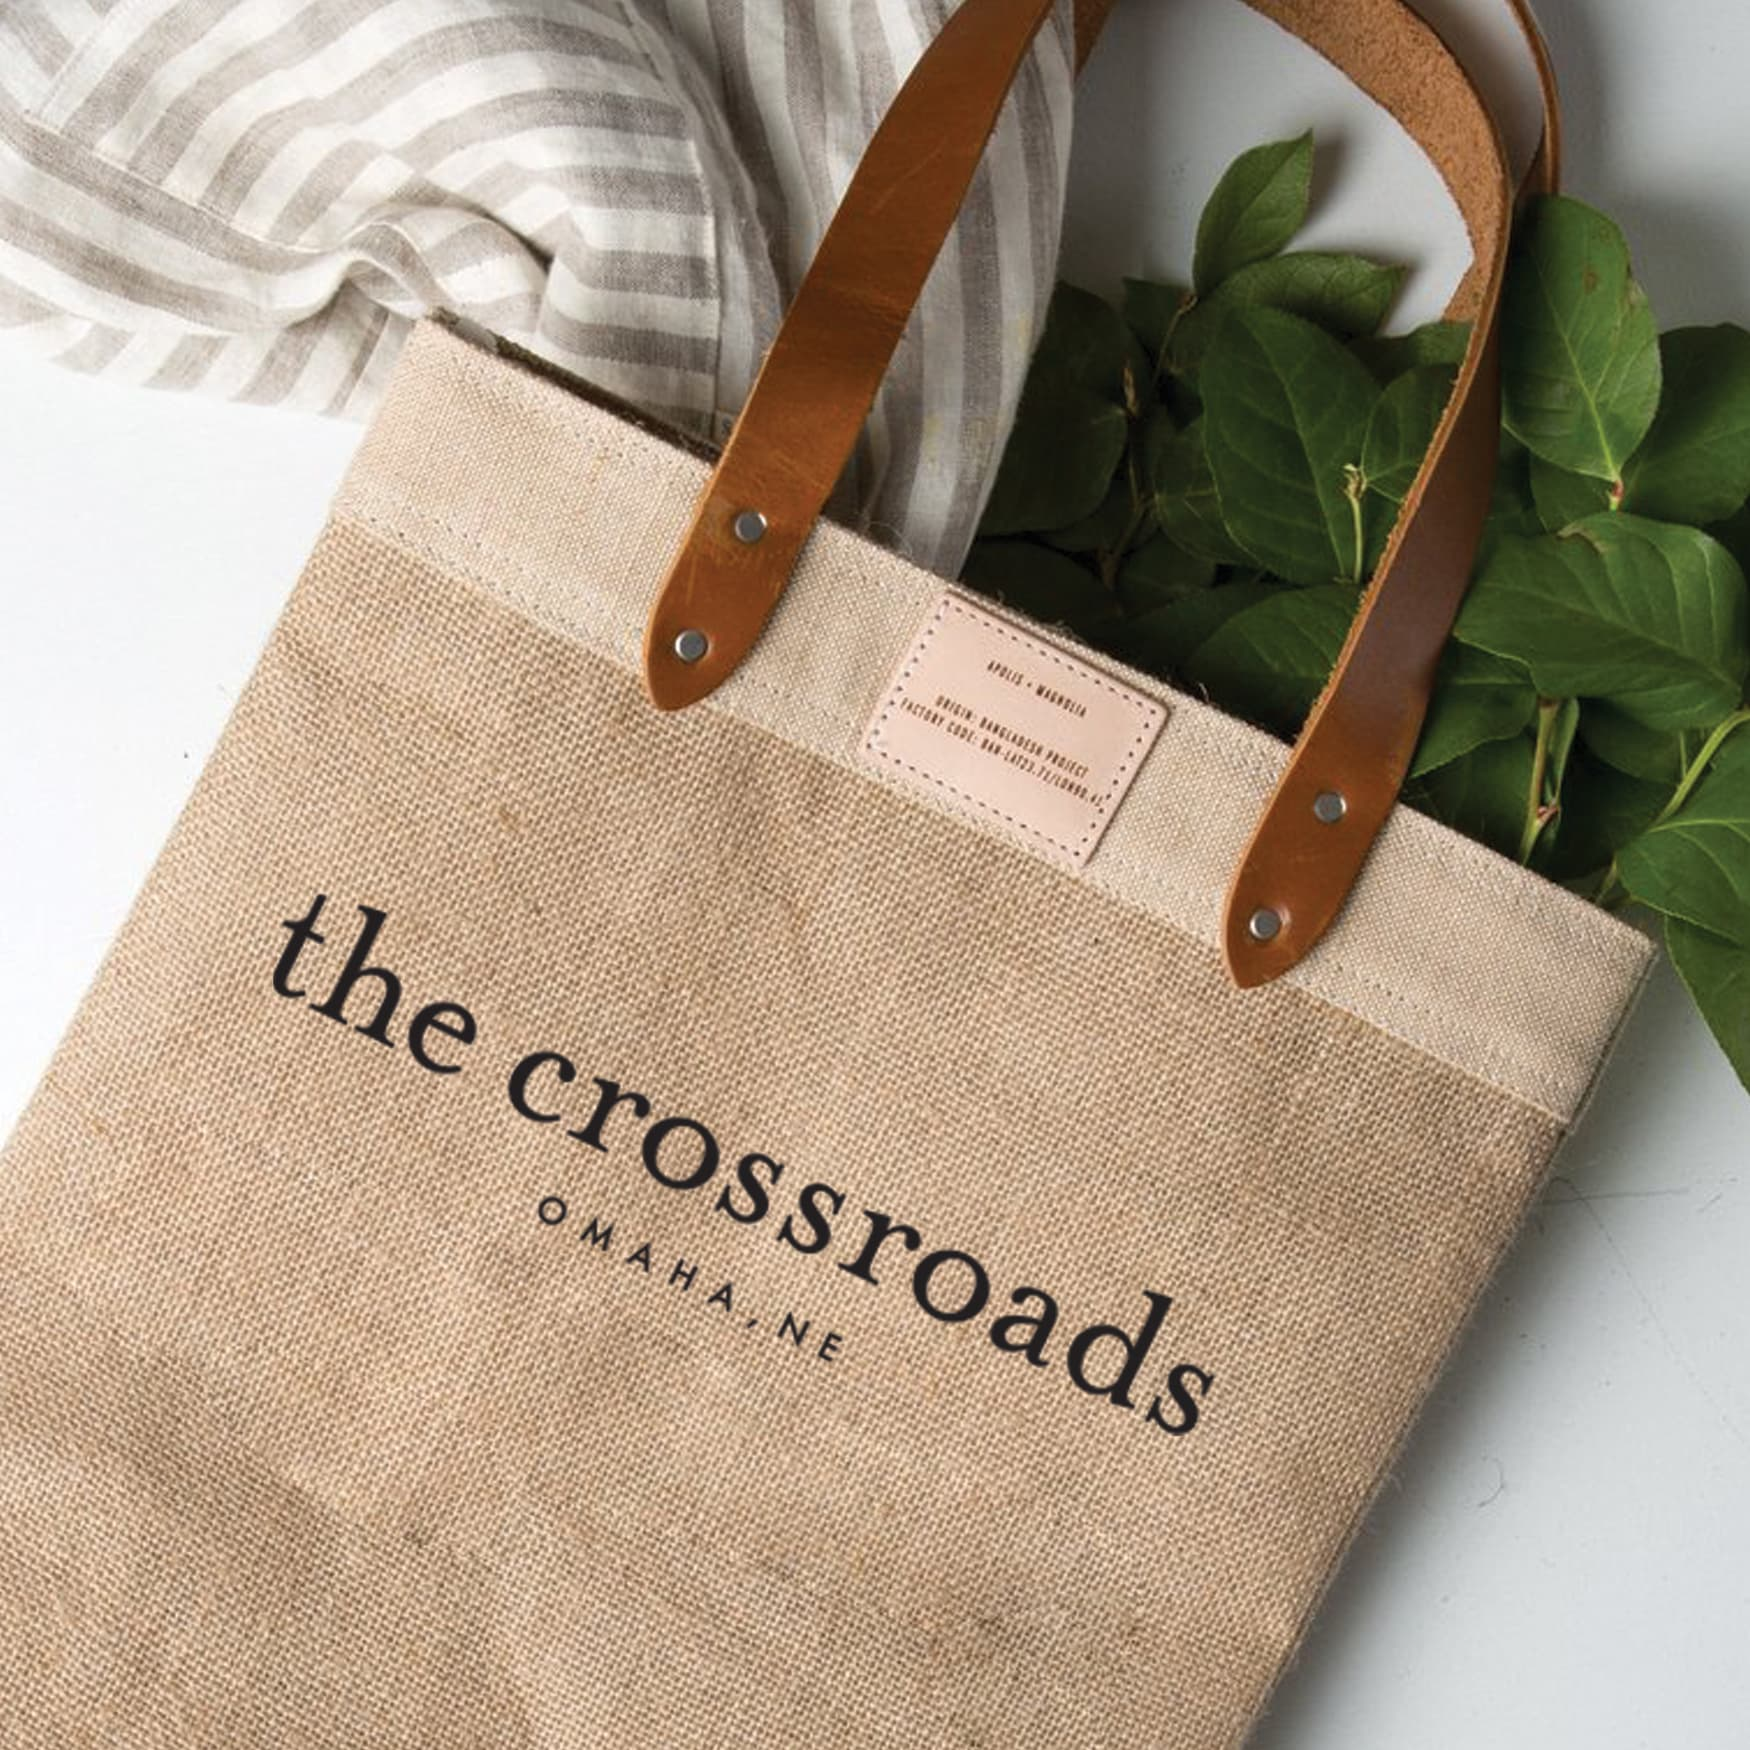 Tote bag with brand logo The Crossroads printed on it and a some plants and a linen cloth falling out of the top.